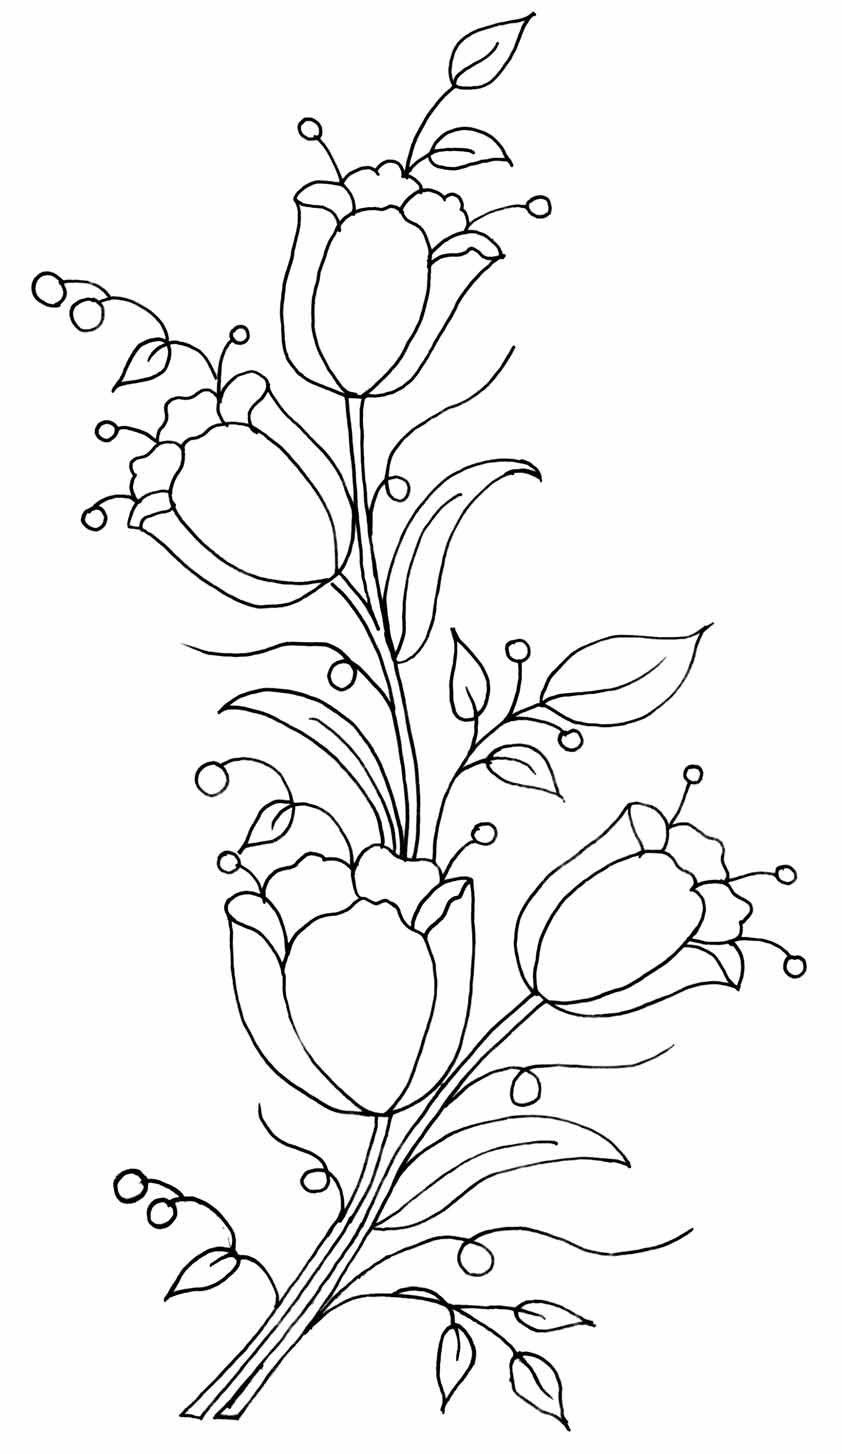 Y a b a n n c r ig pinterest embroidery hand flower line drawing pattern bankloansurffo Images